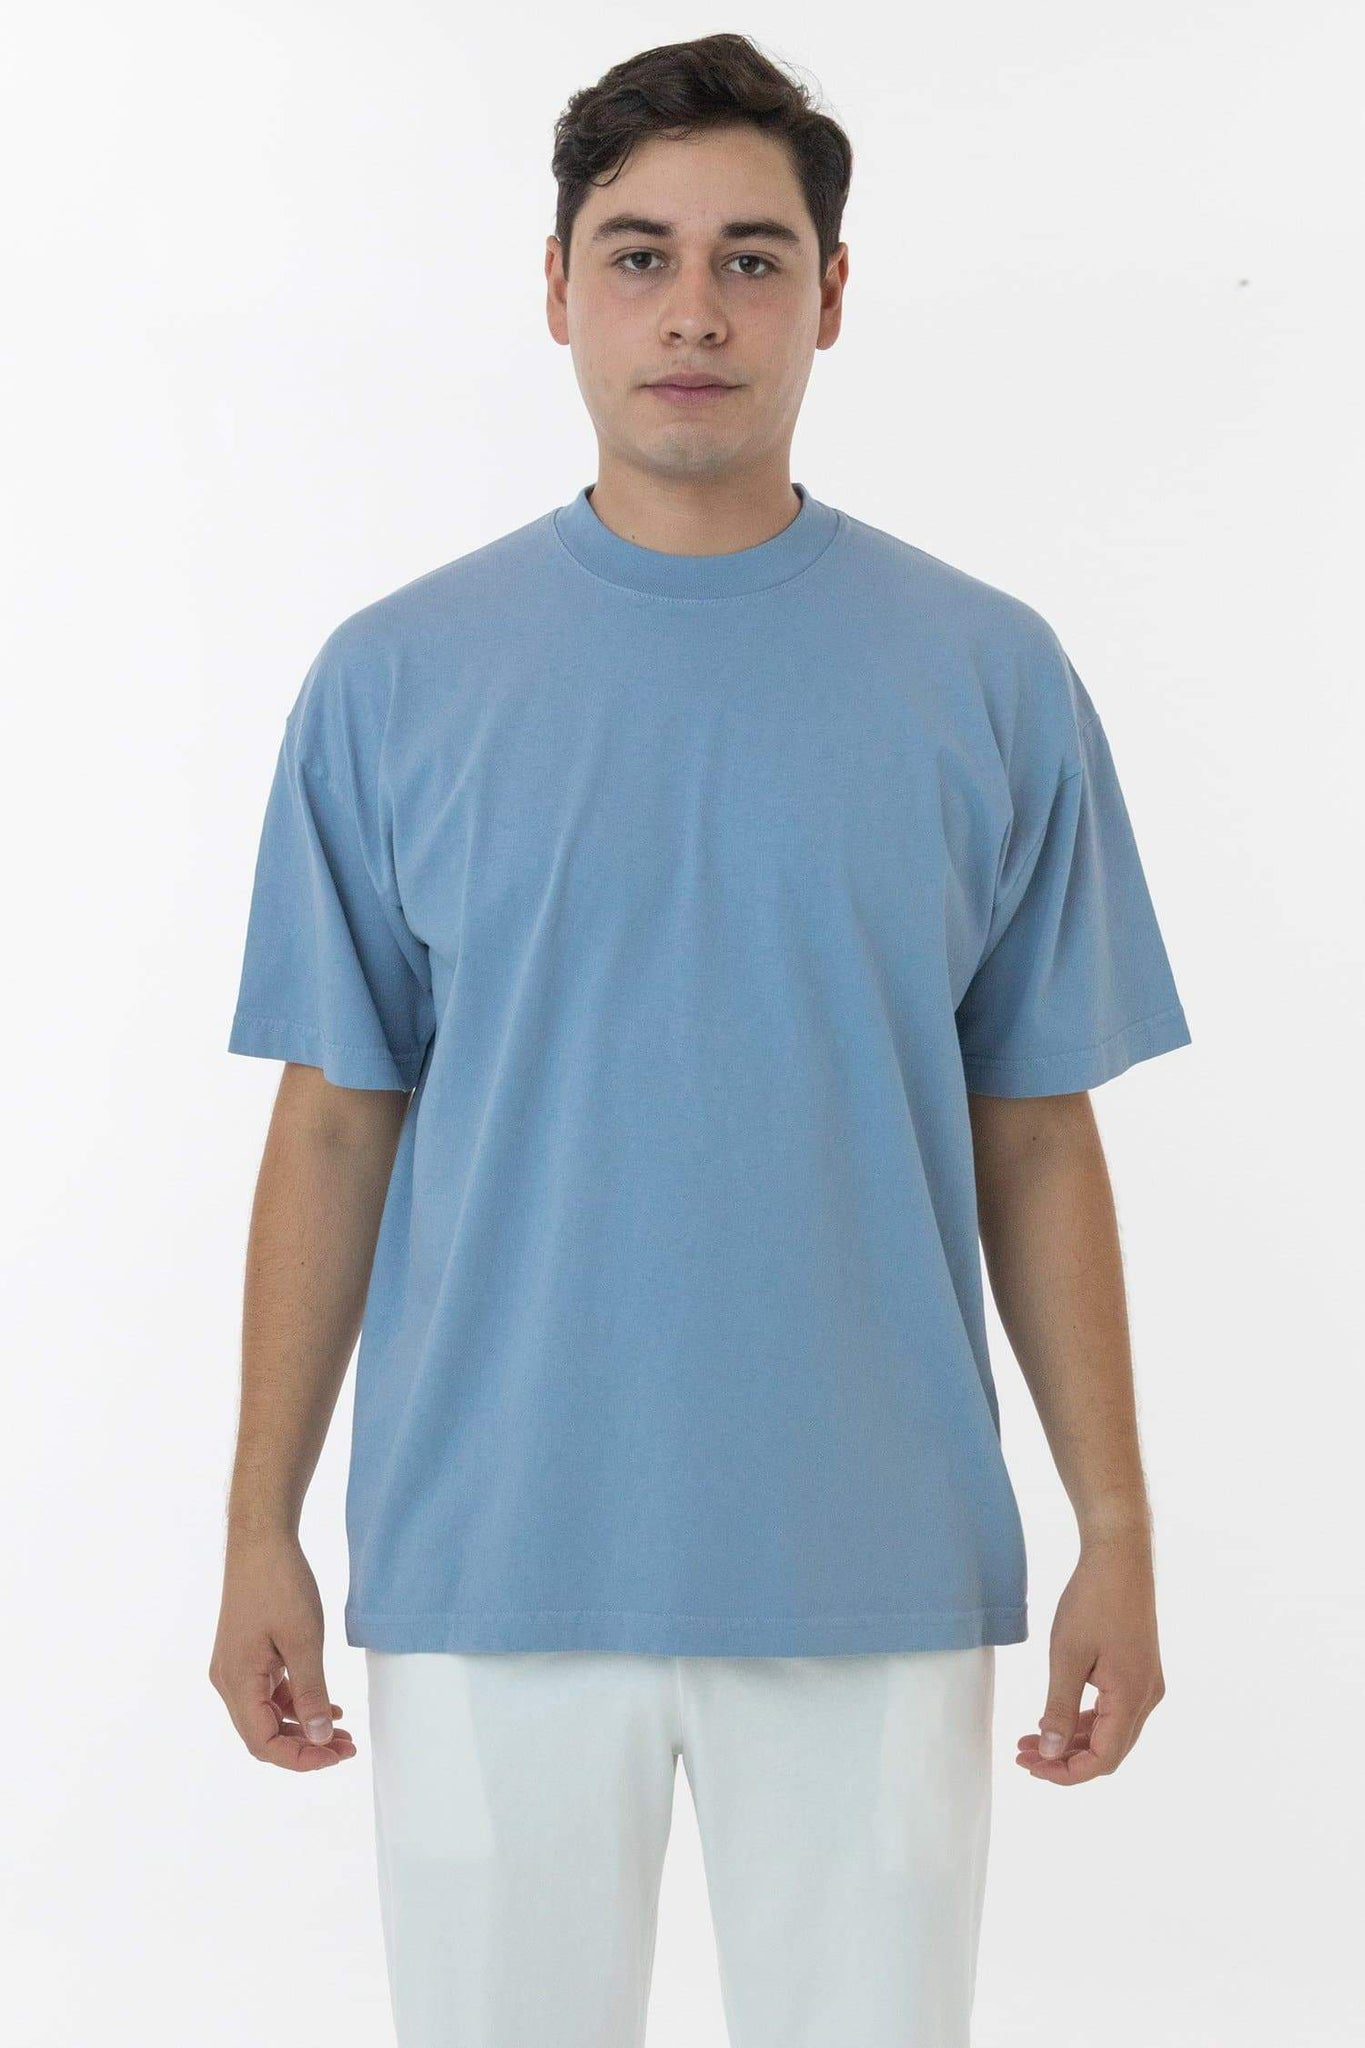 1801GD - 6.5oz Garment Dye Pastel Crew Neck T-Shirt